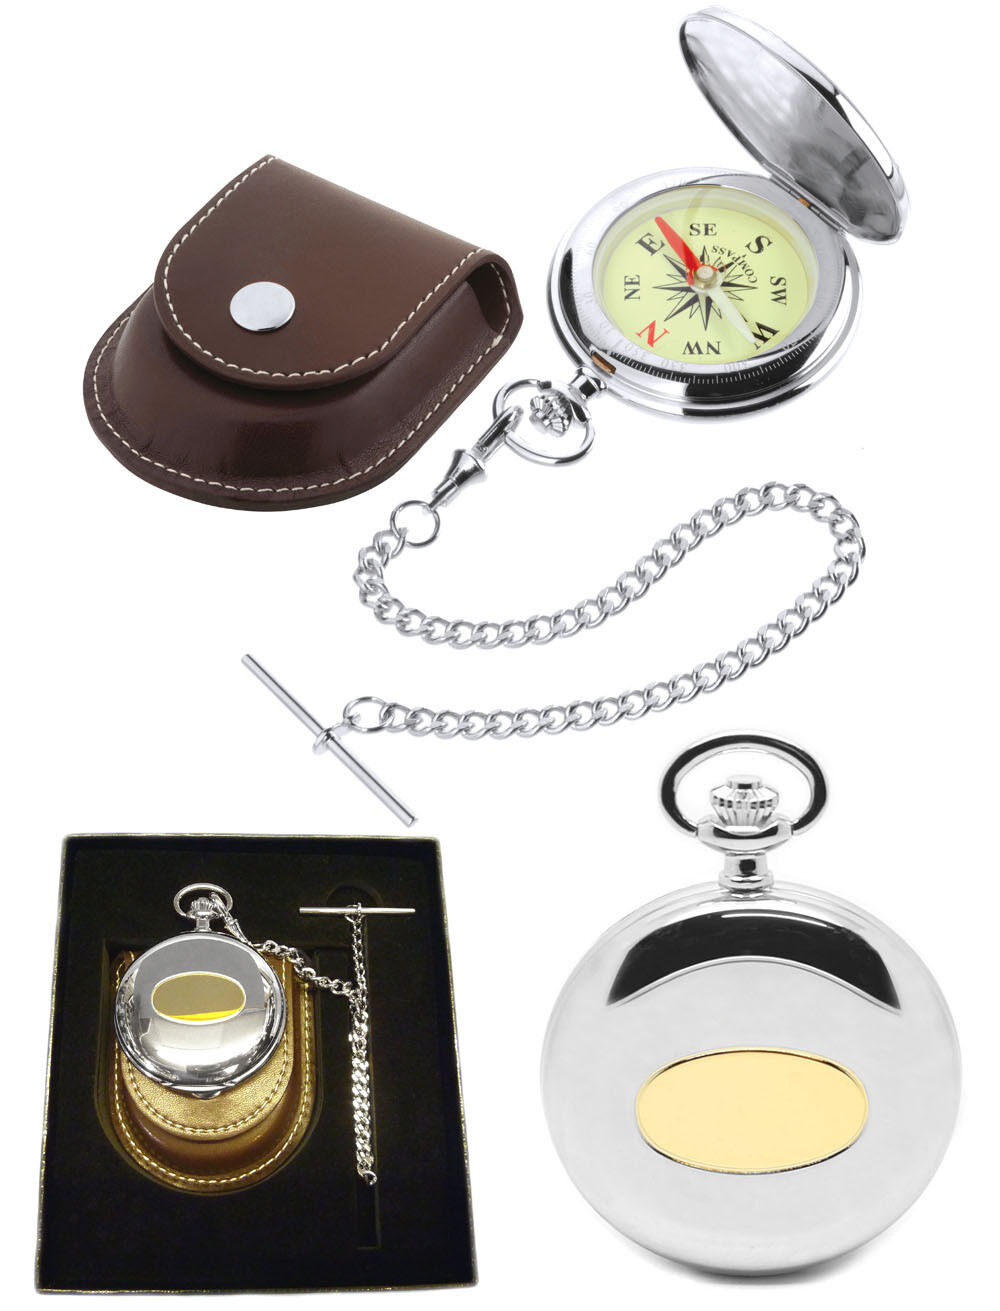 Jean Pierre Pocket Compass and Pouch with Free Engraving (D5)